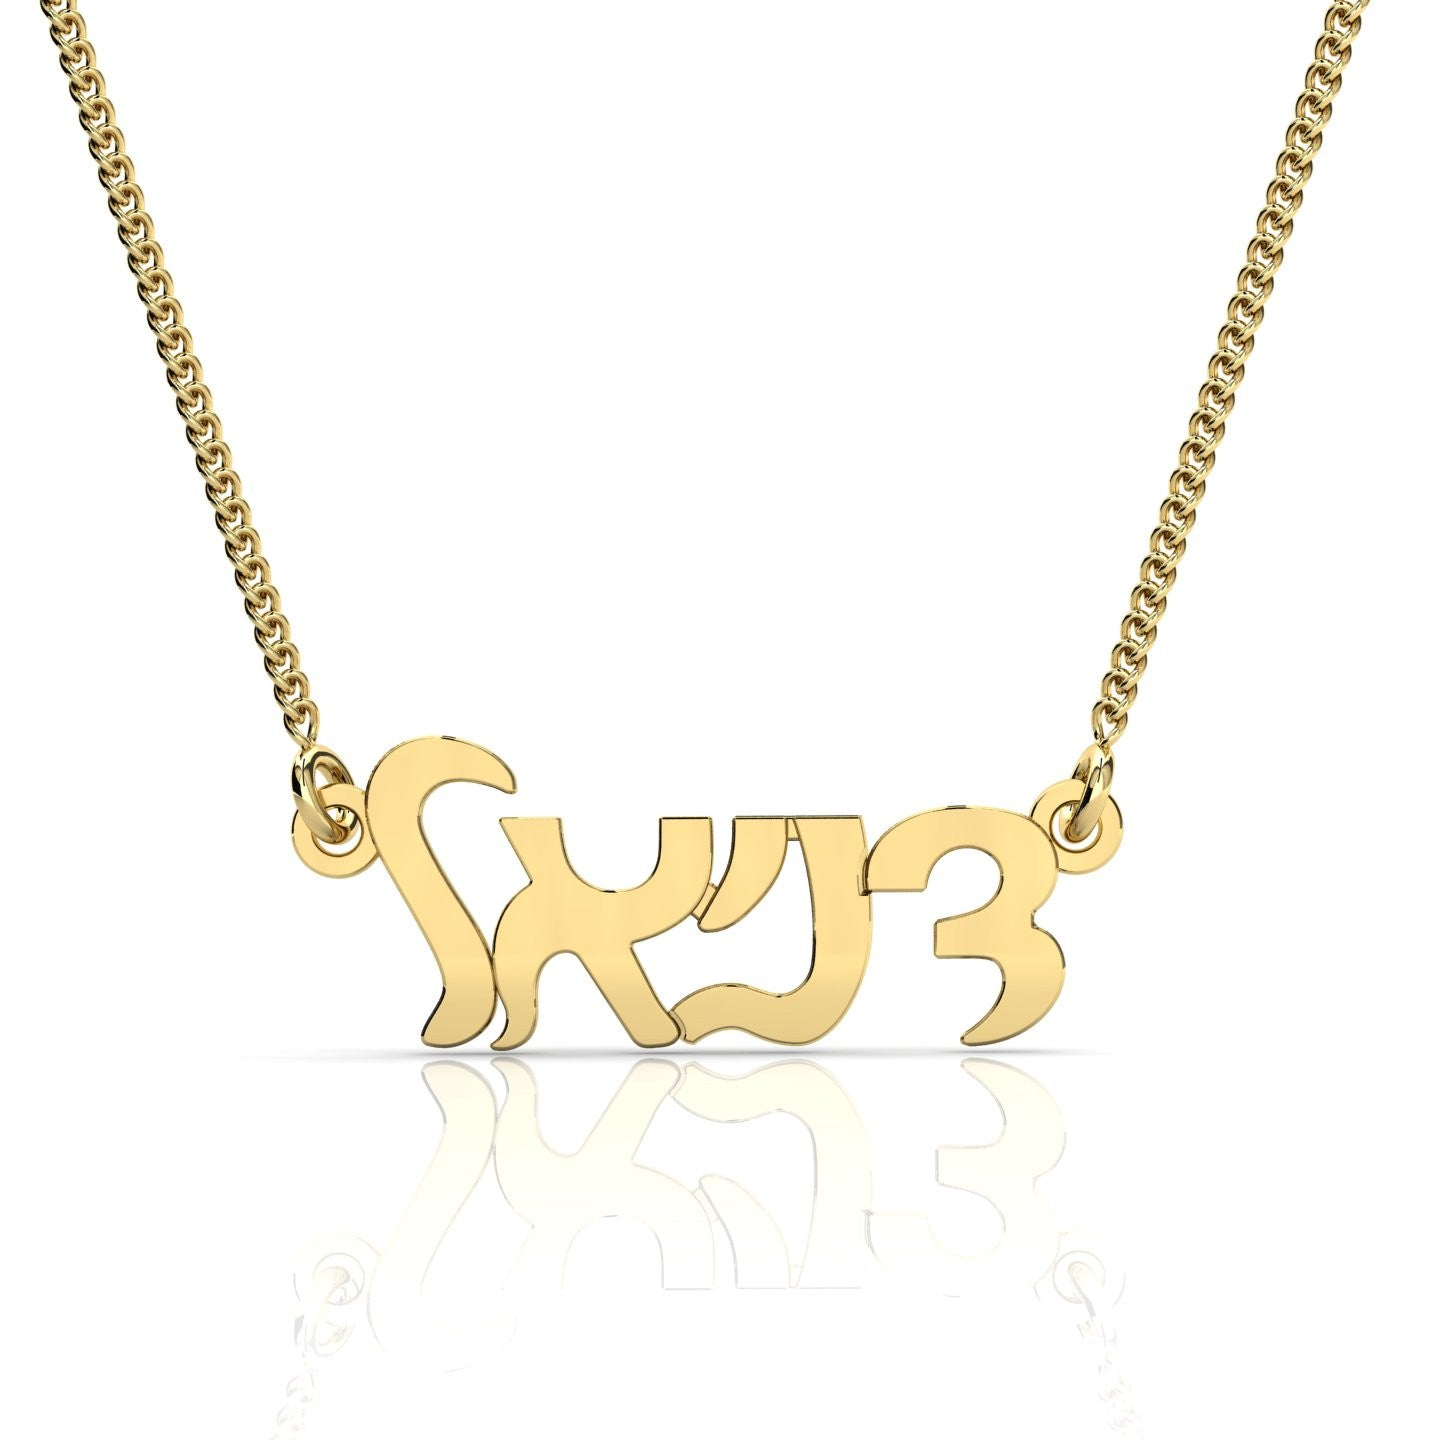 jewellery names on necklace treasure noush disk turq yellow with name gemstone product by